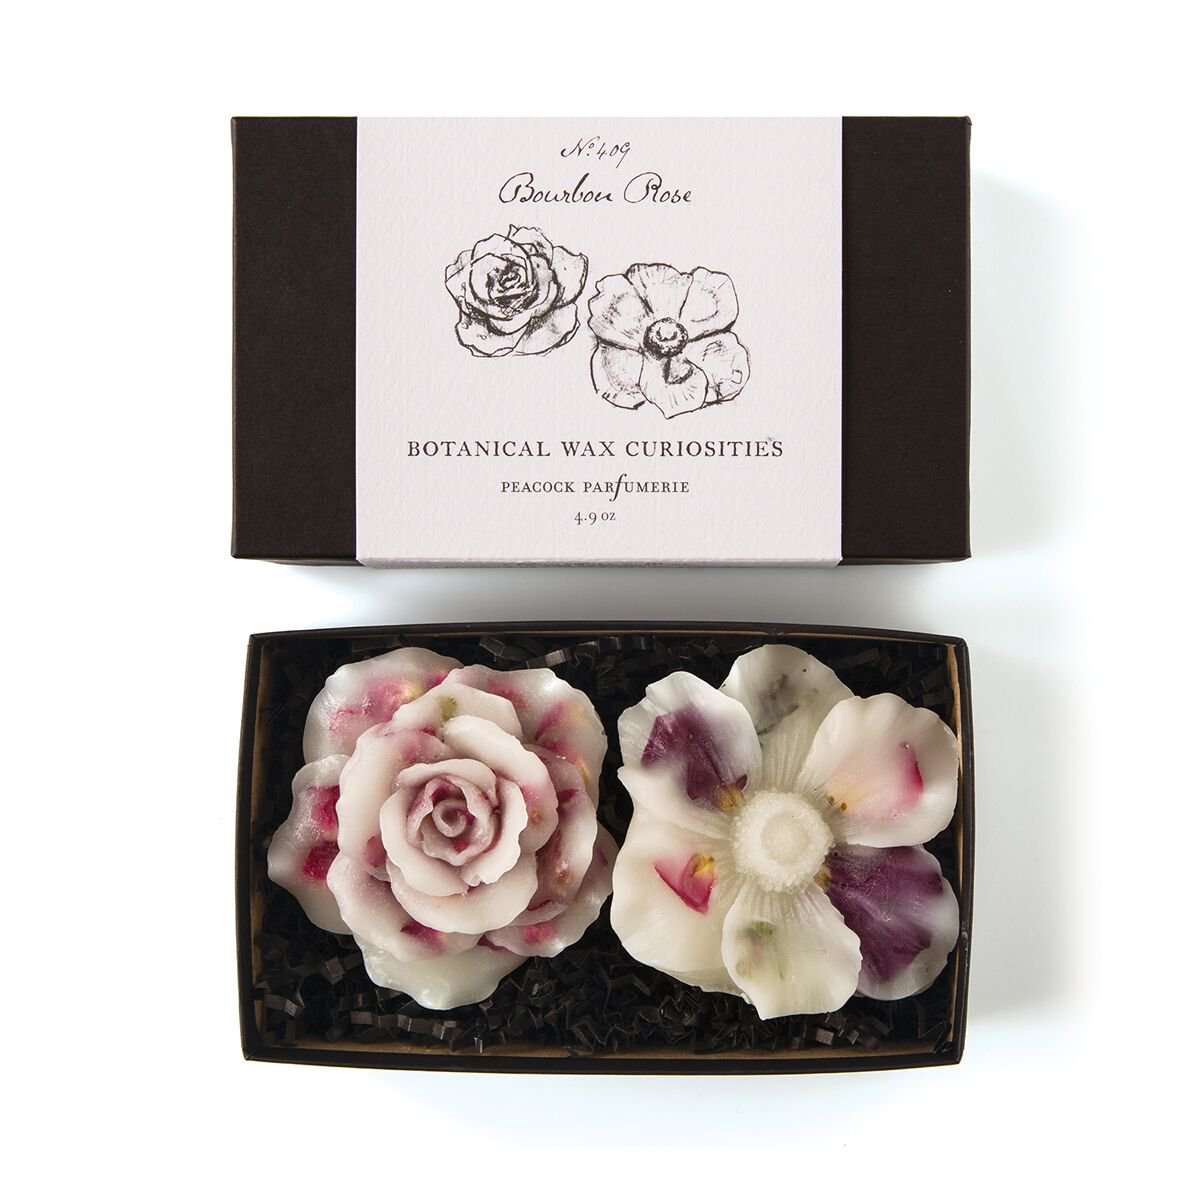 Botanical Wax Curiosities – Bourbon Rose (Flowers)